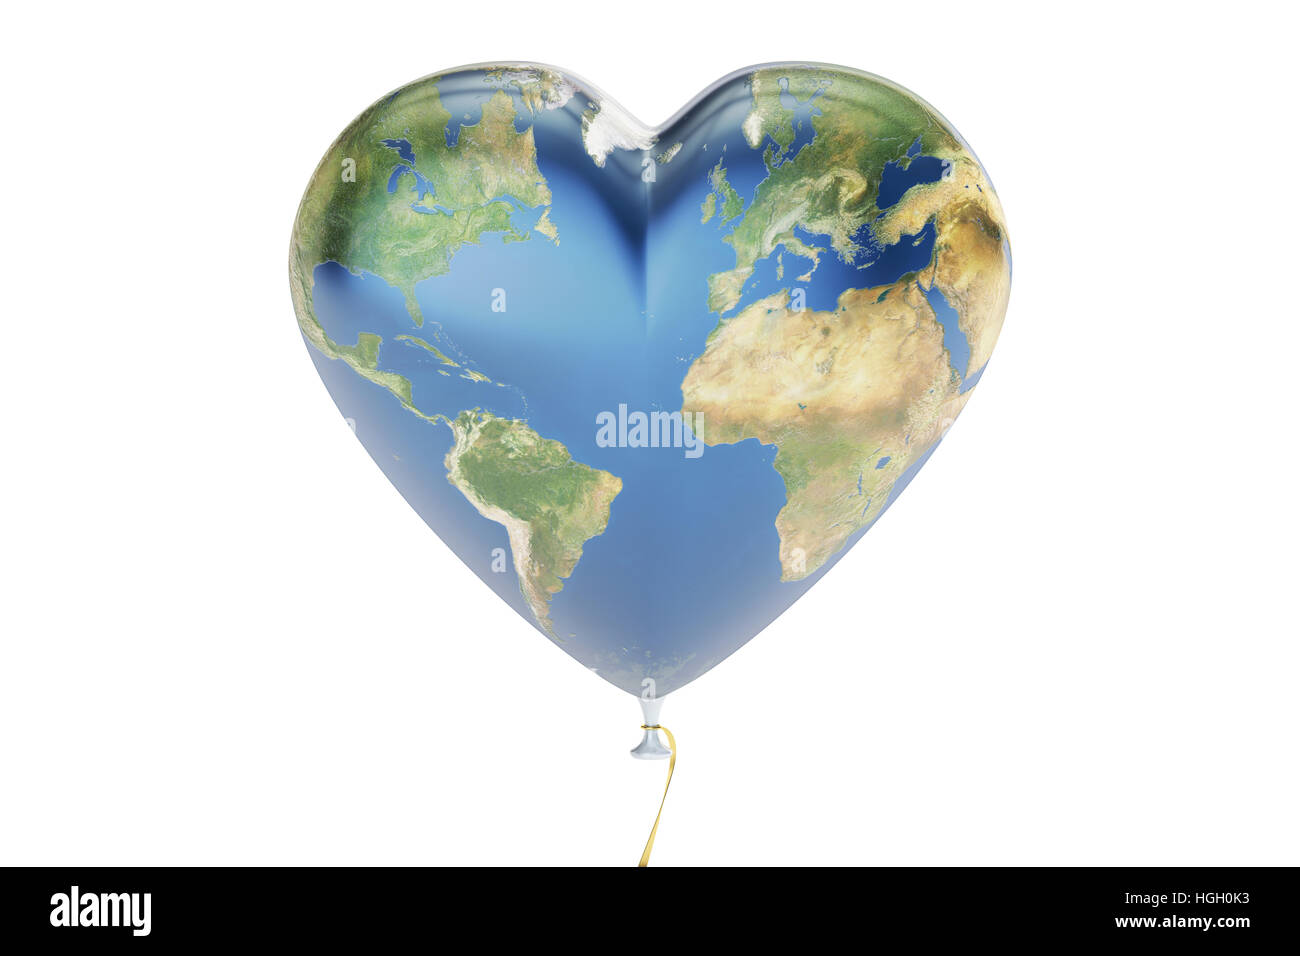 Balloon in the shape of hearts with map of earth 3d rendering balloon in the shape of hearts with map of earth 3d rendering isolated on white background gumiabroncs Gallery